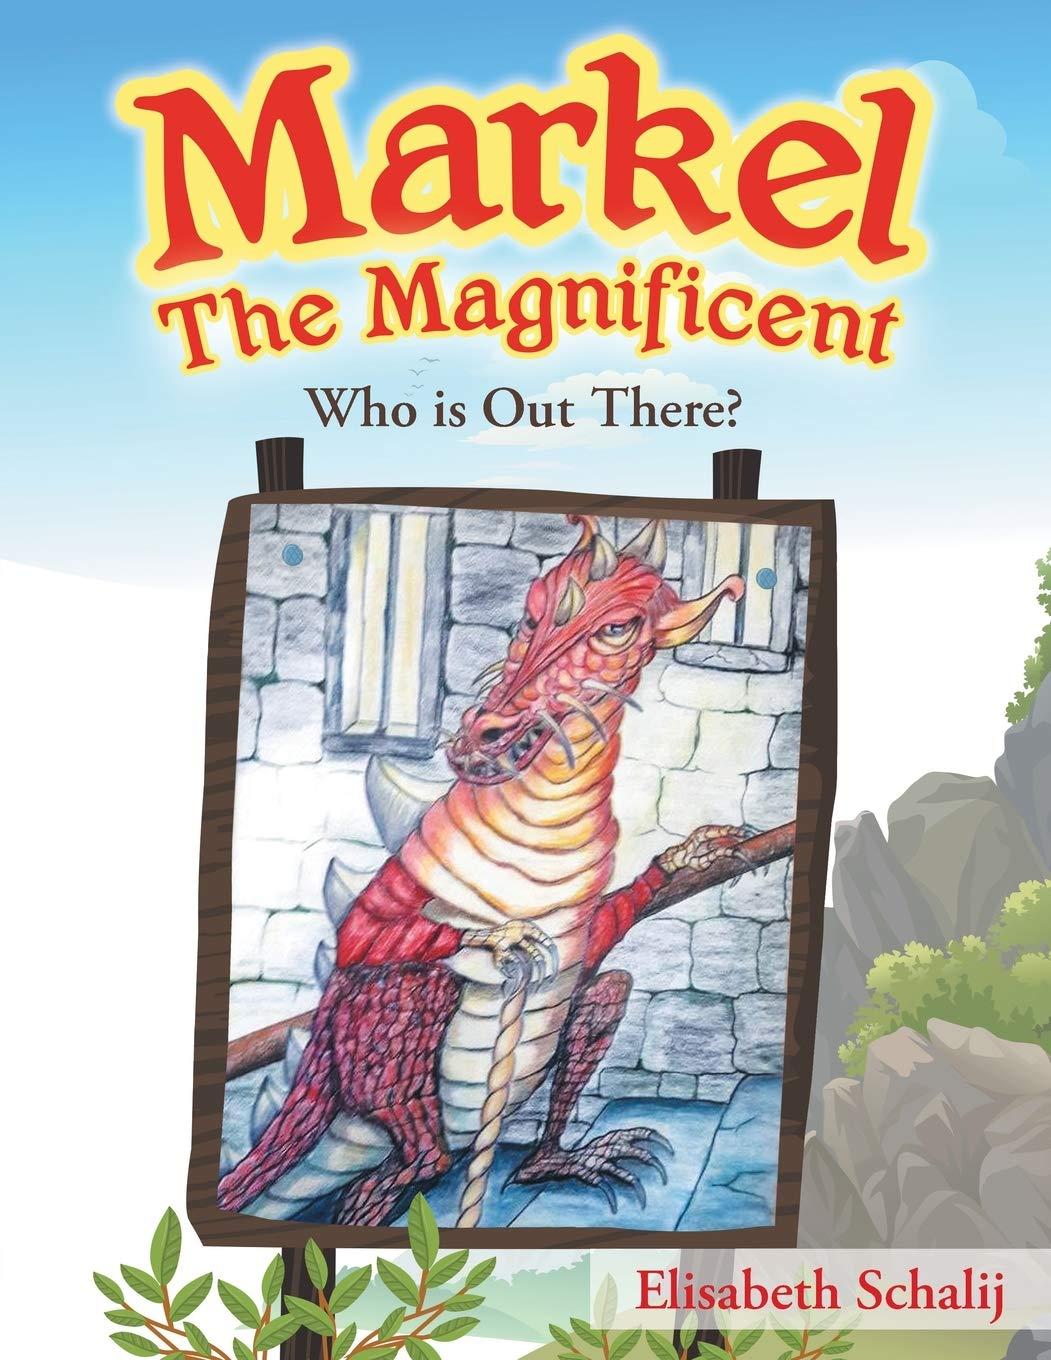 Markel The Magnificent: Who is Out There?